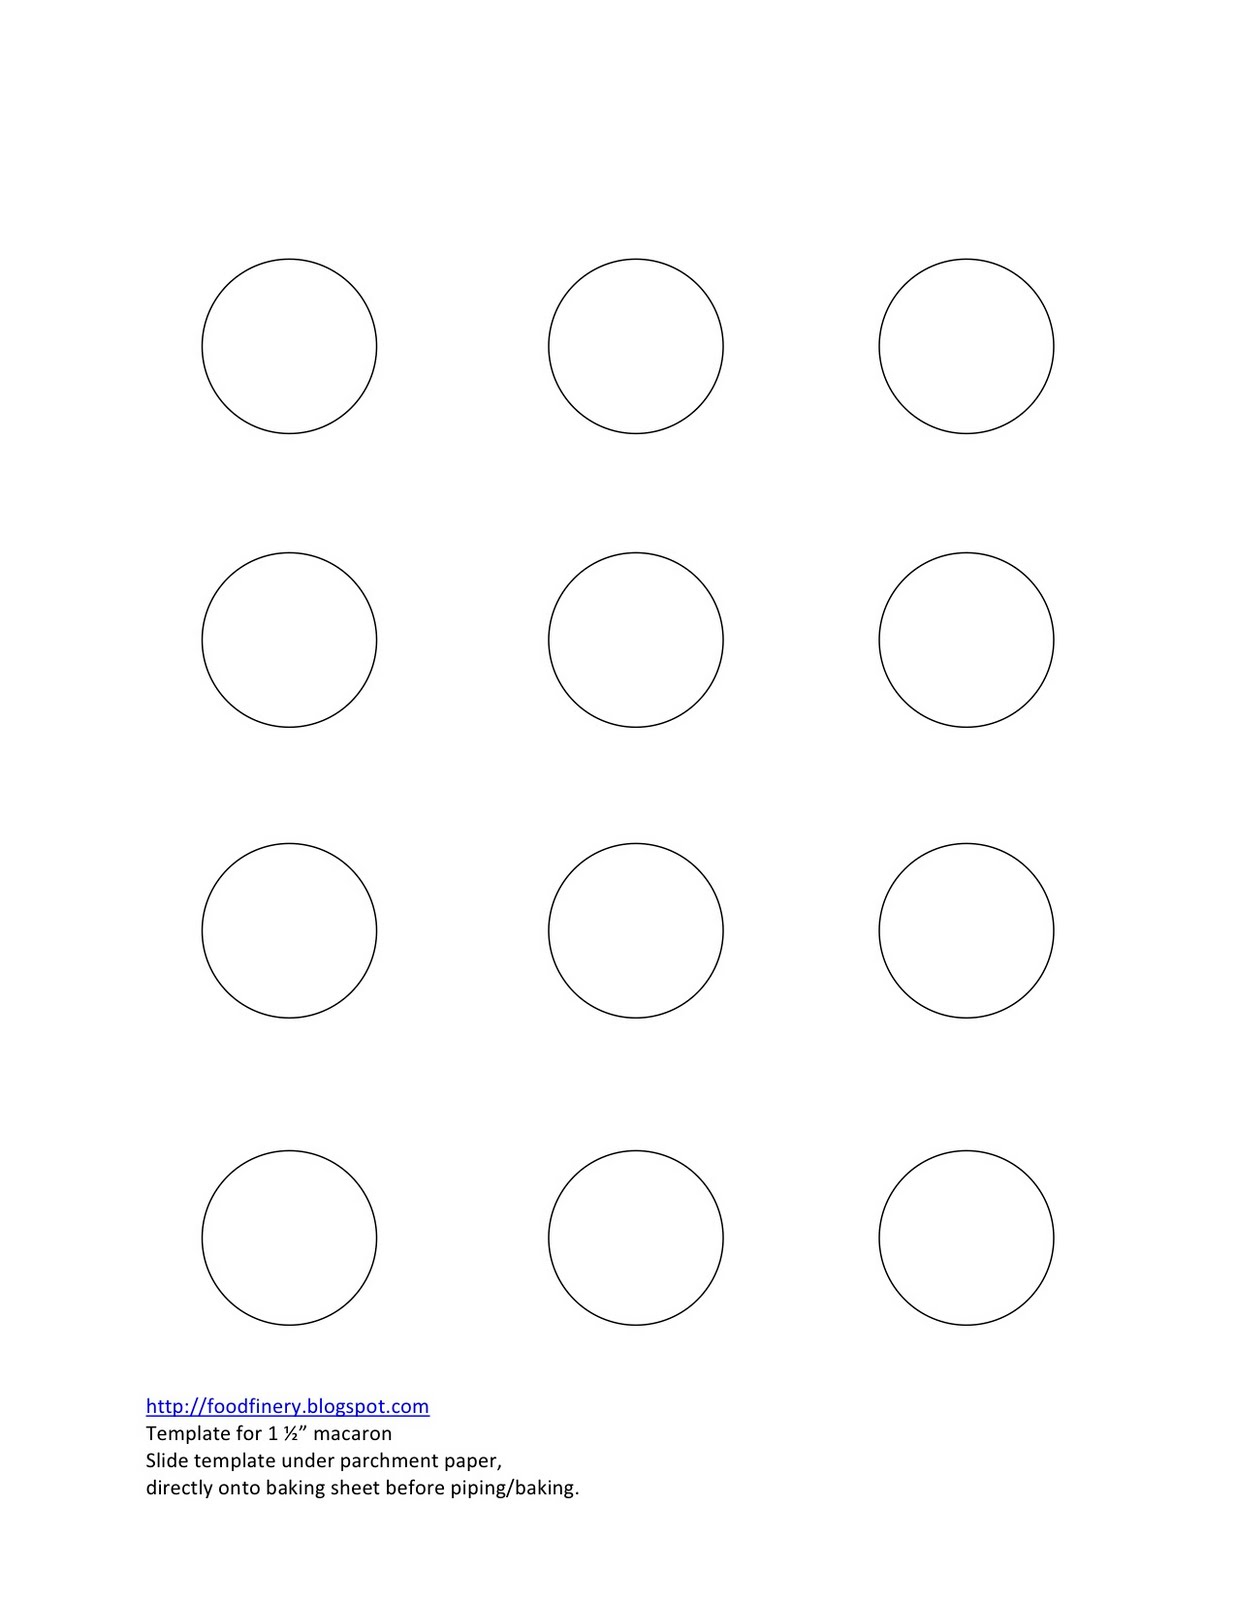 Printable Macaron Piping Template From Southernfatty